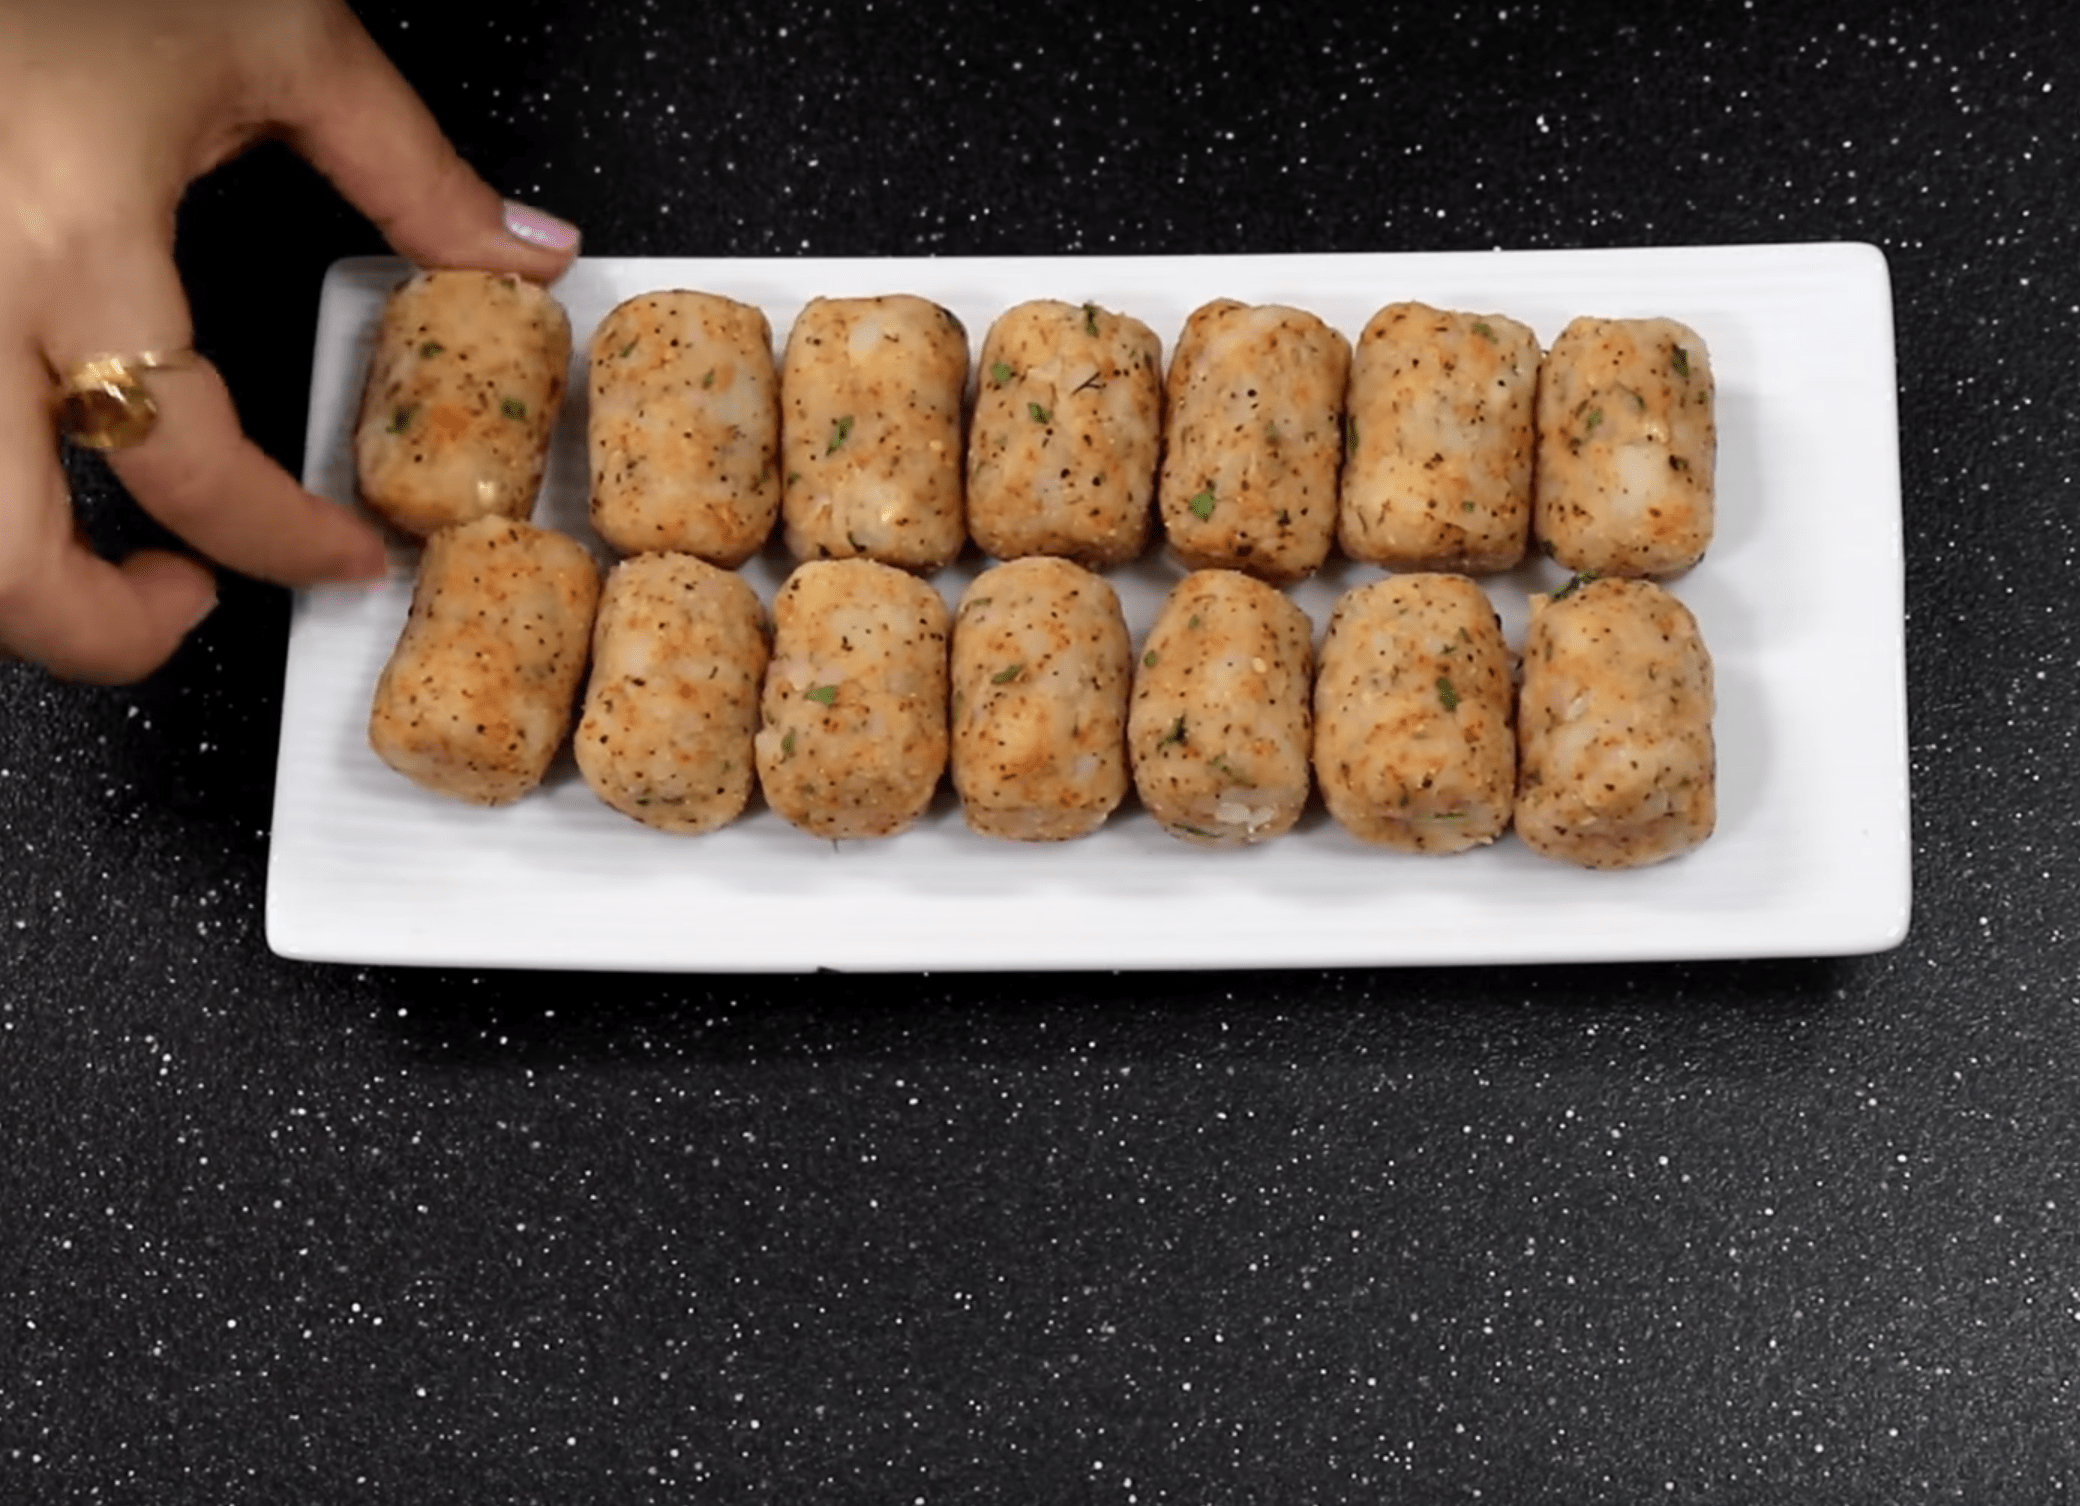 Make 12 to 15 tots before frying